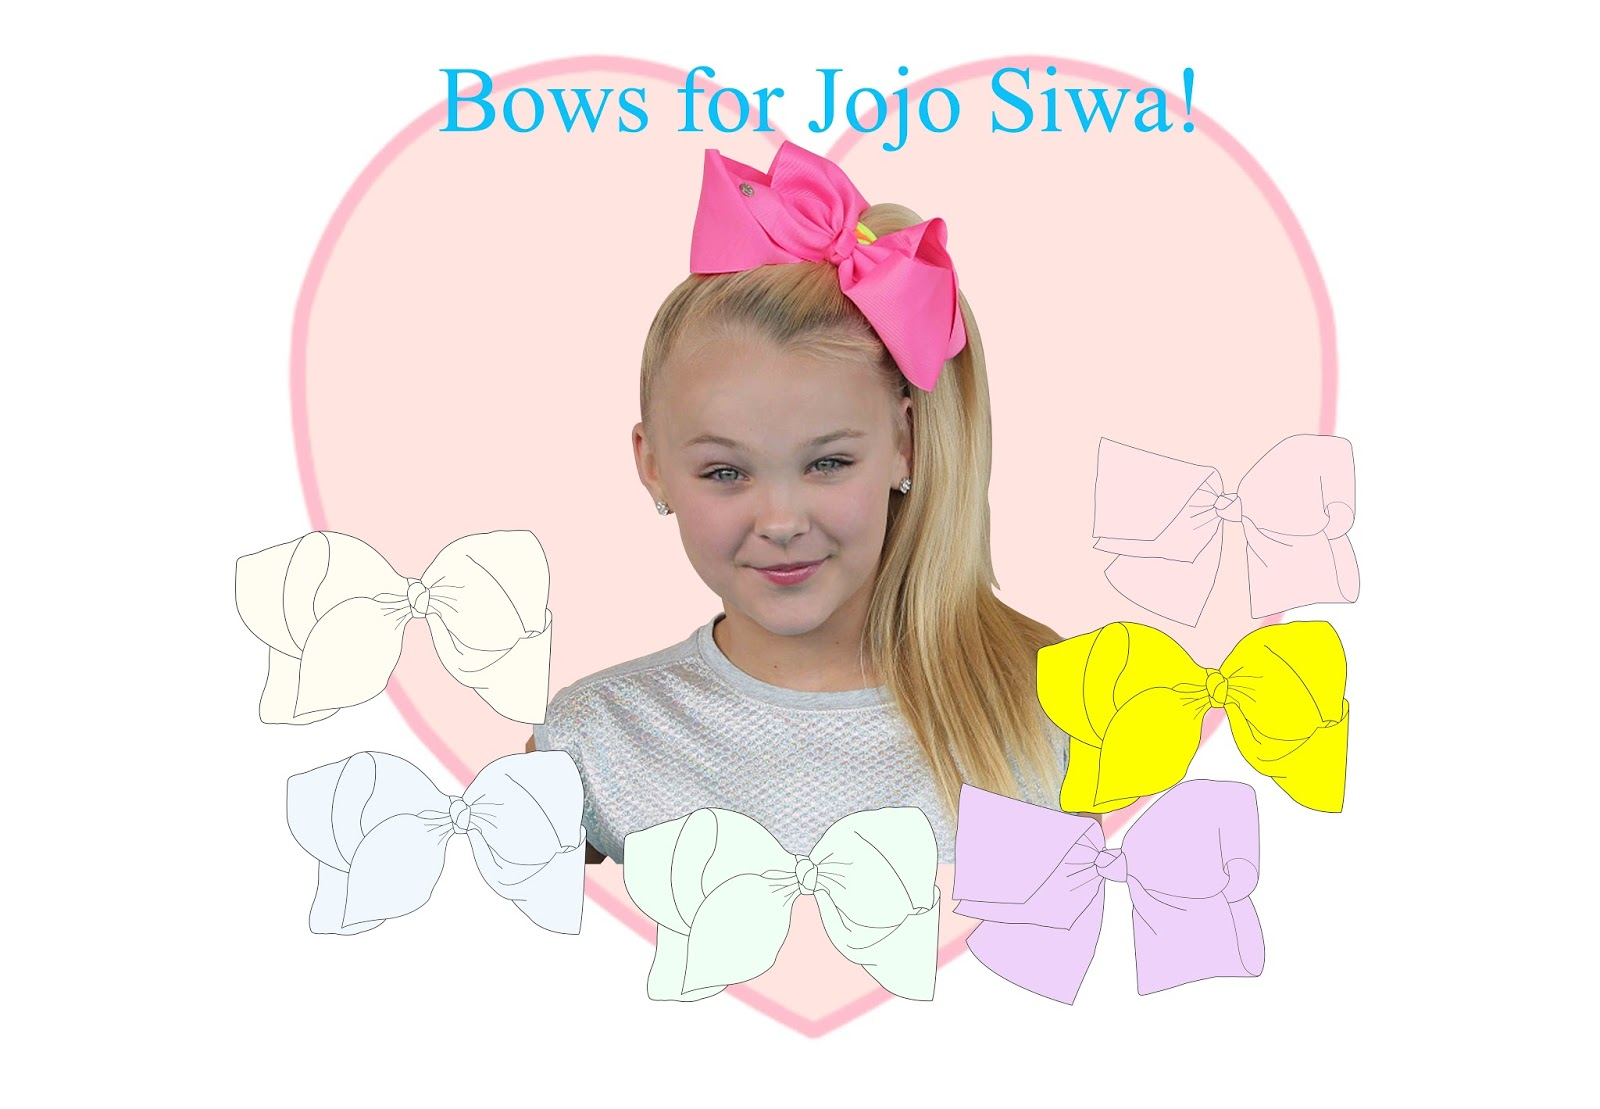 How To Draw A Jojo Siwa Doll